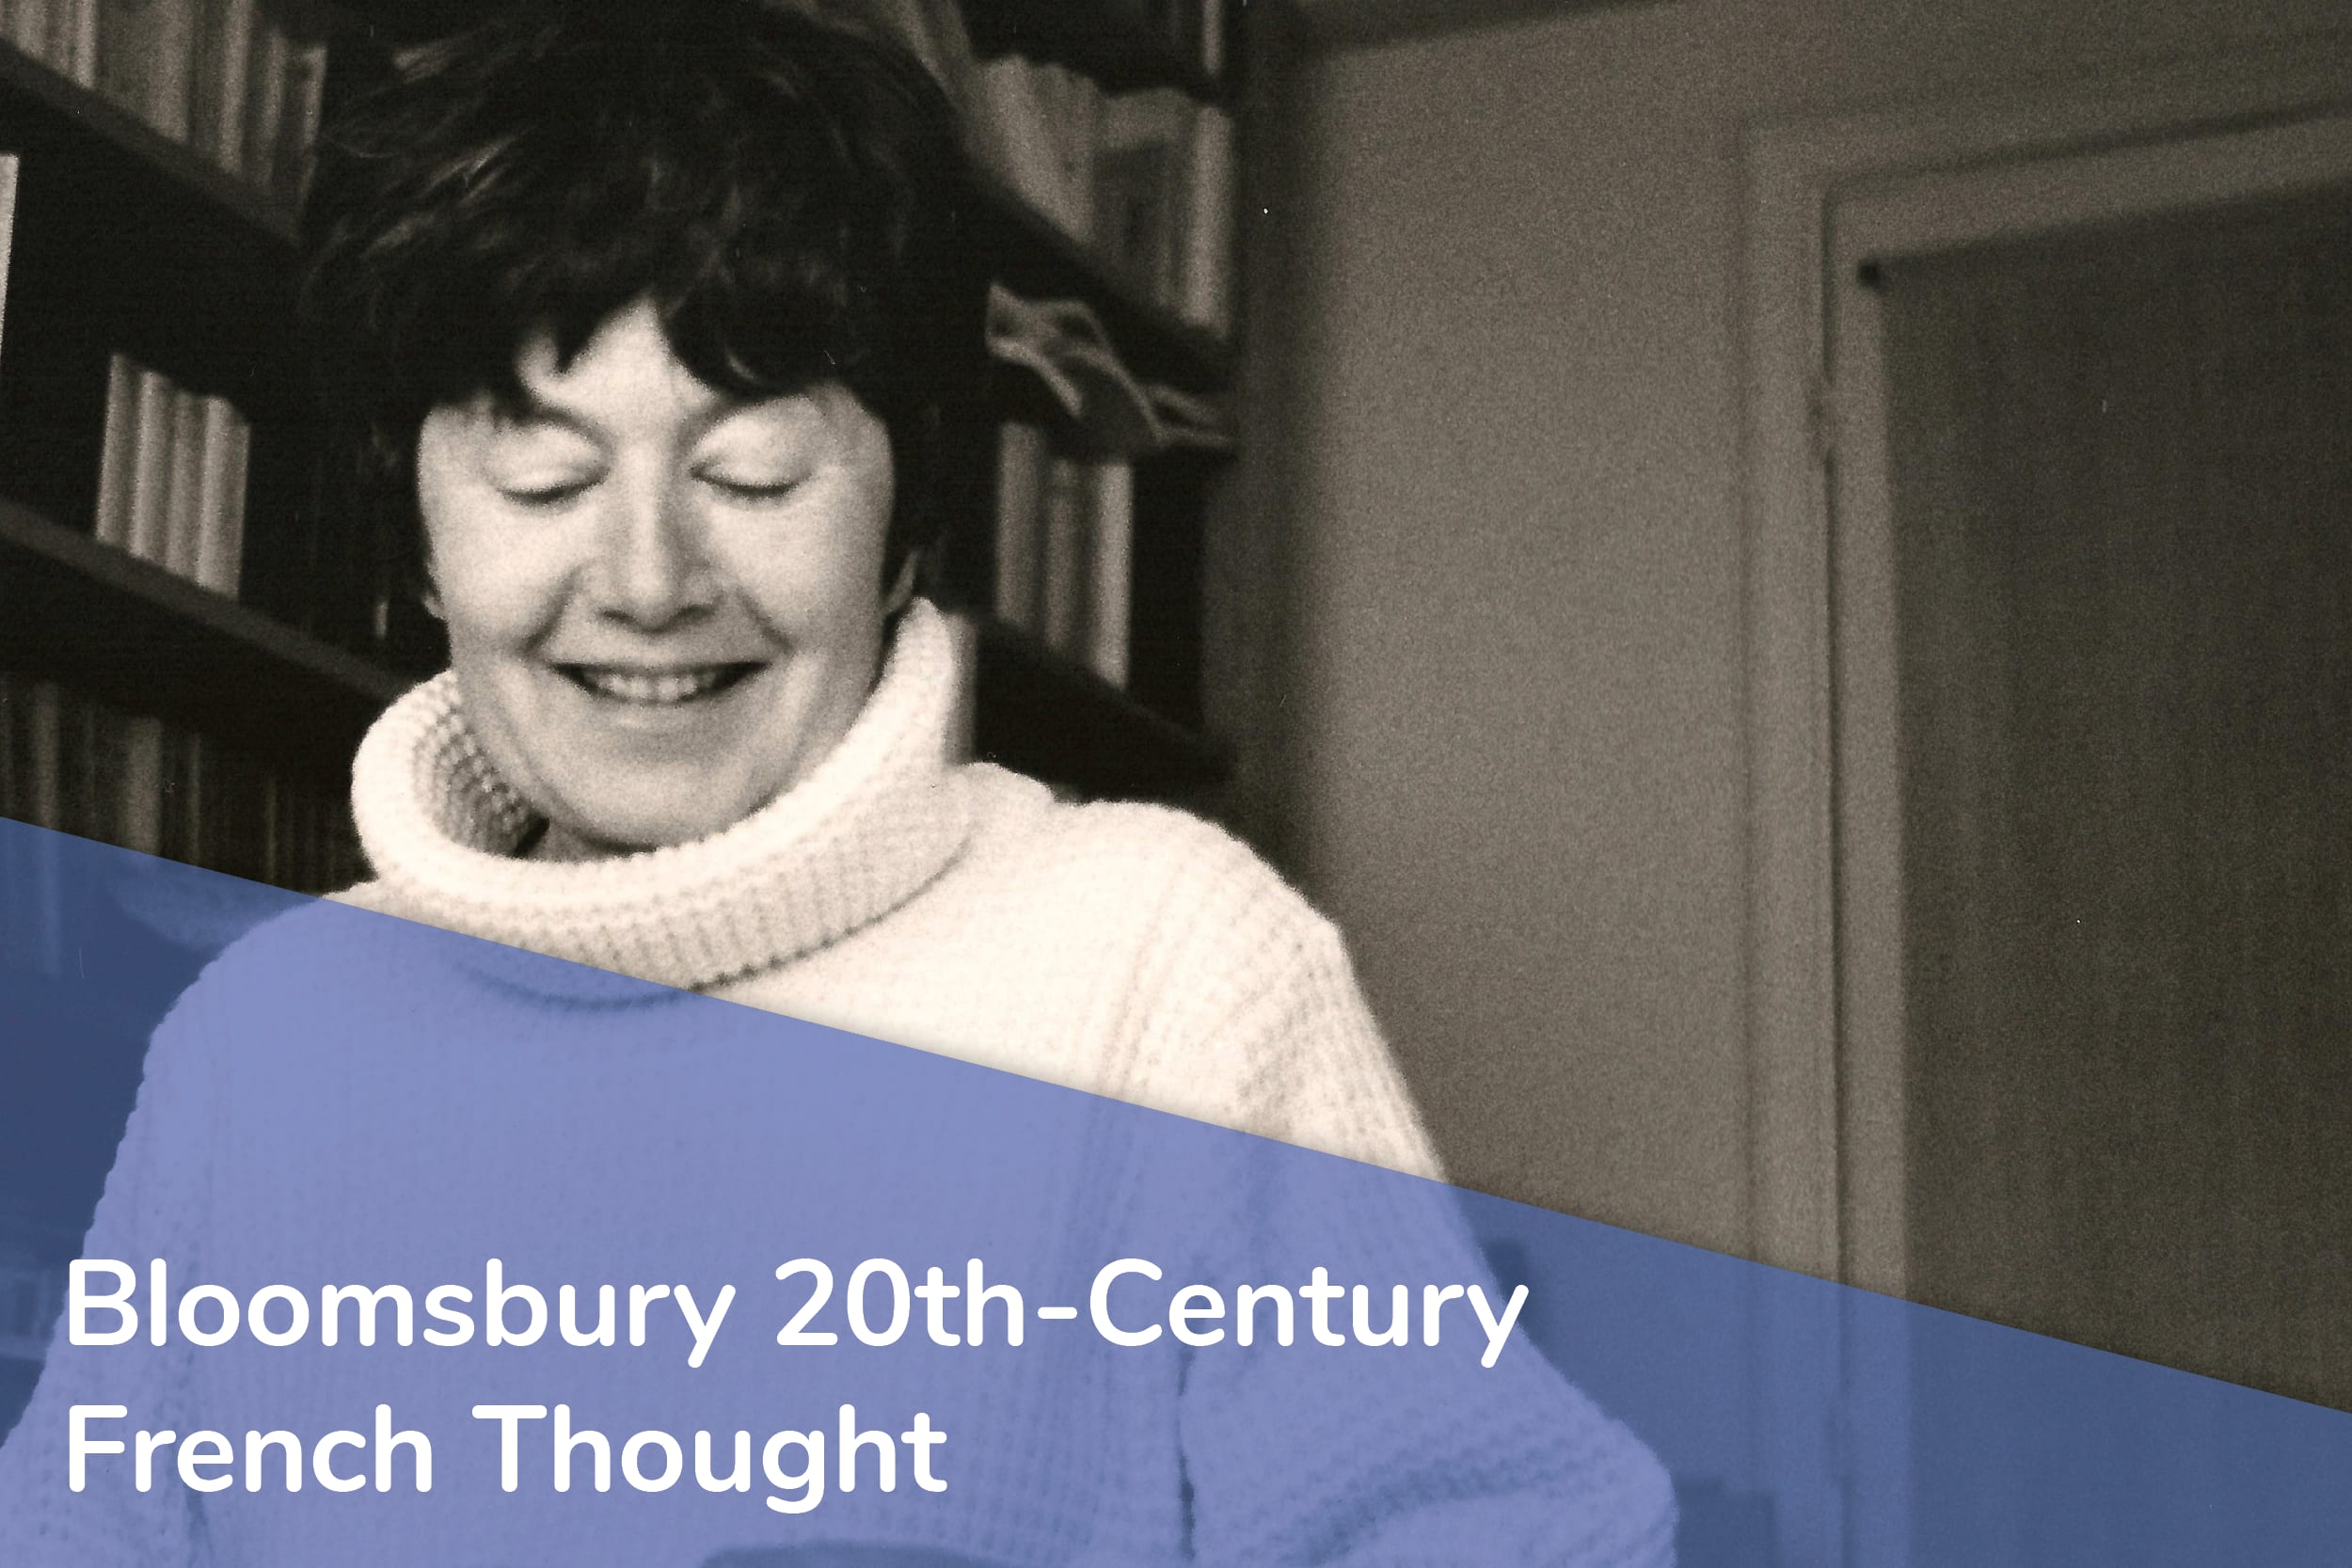 Bloomsbury 20th-Century French Thought